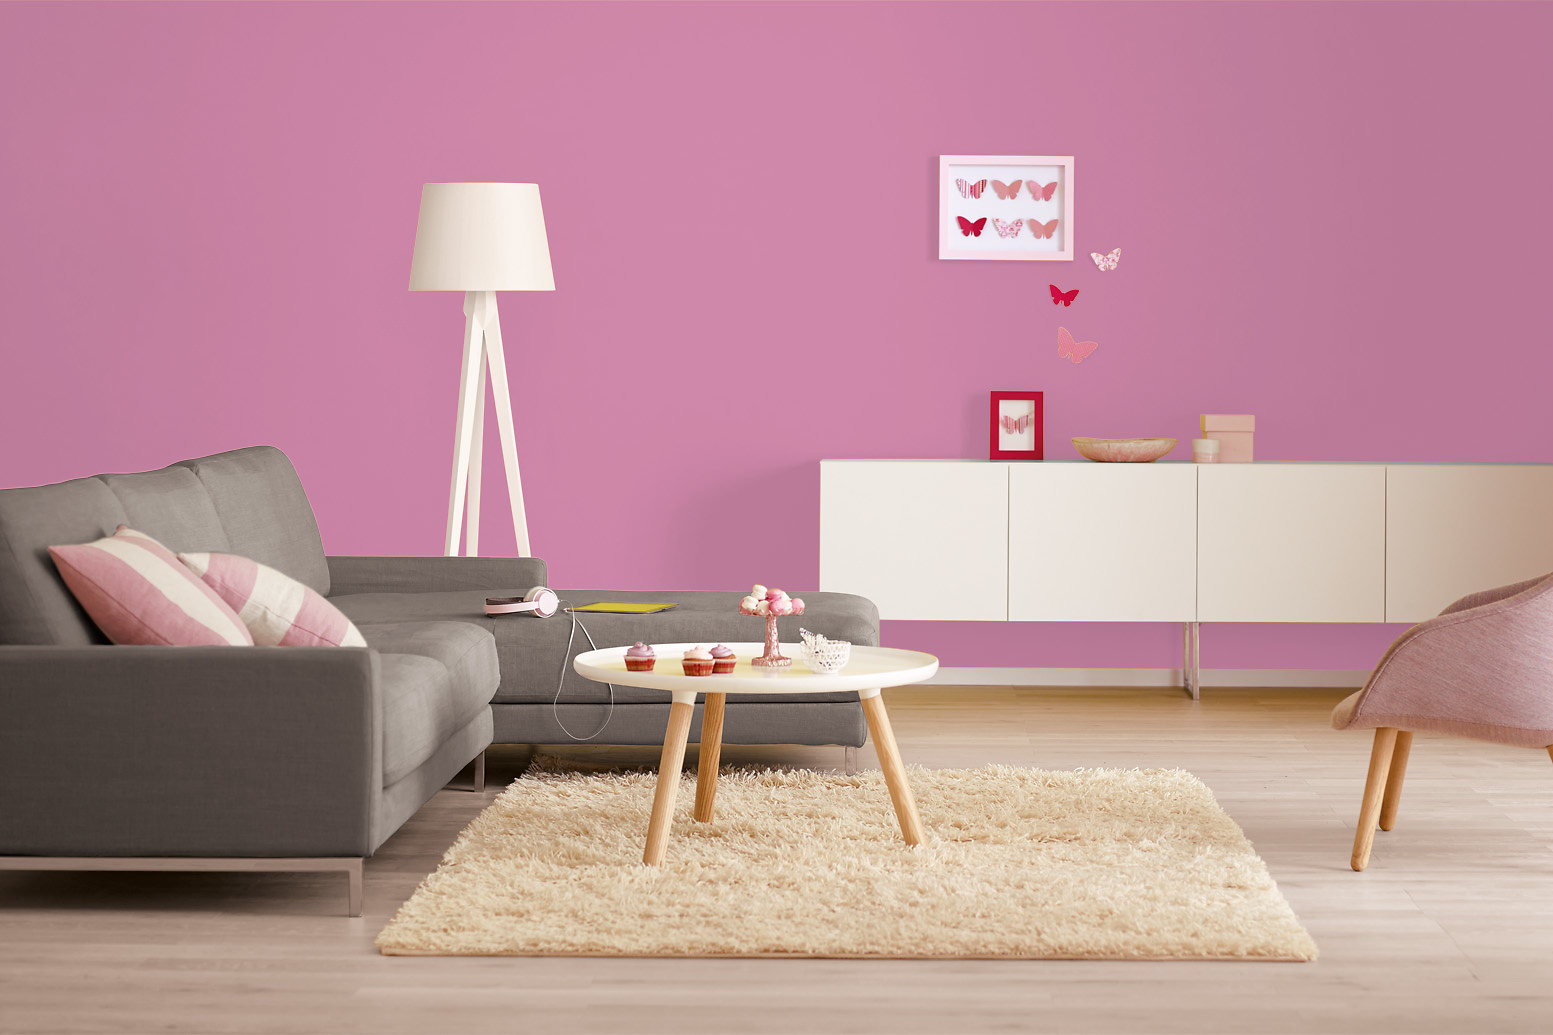 innenfarbe in magenta pink streichen alpina farbrezepte party pink alpina farben. Black Bedroom Furniture Sets. Home Design Ideas